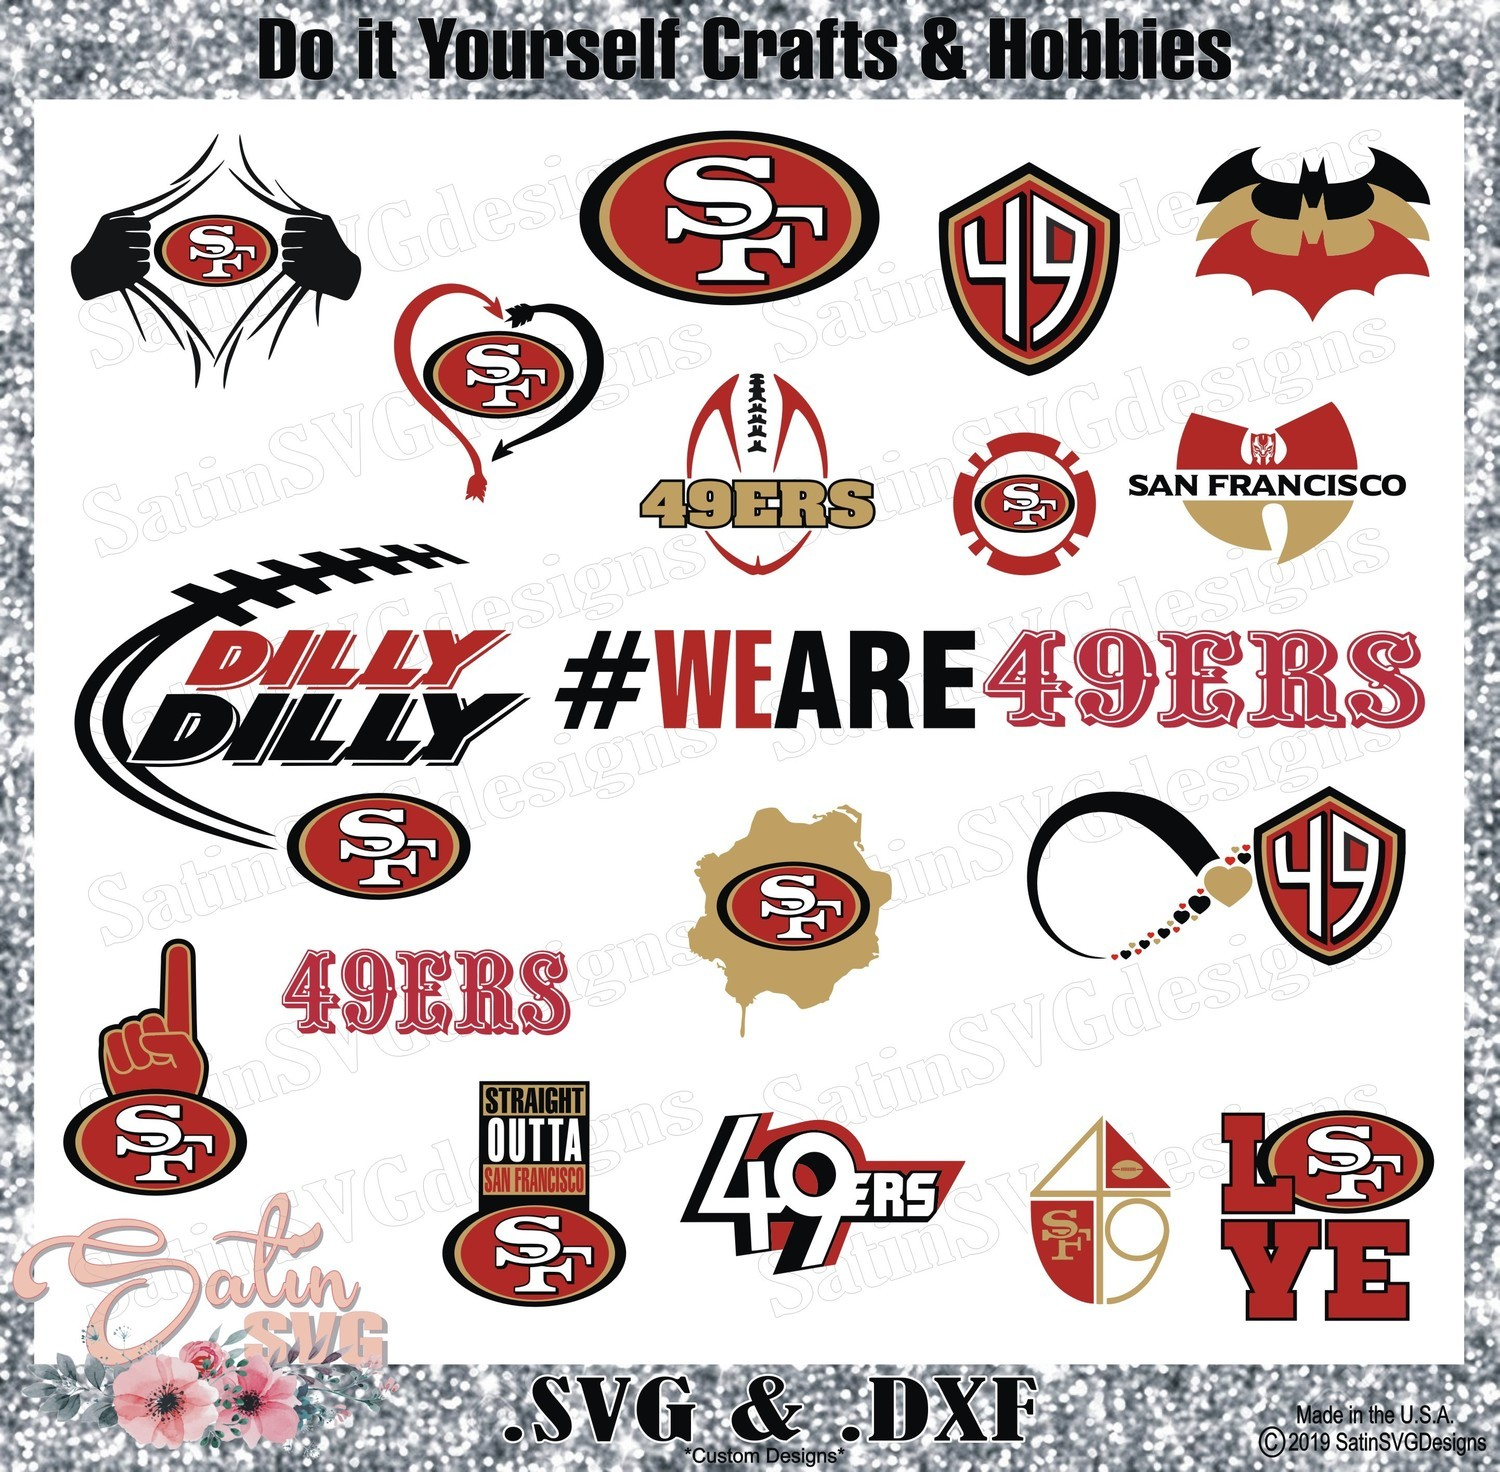 San Francisco 49ers Set Design Svg Files Cricut Silhouette Studio Digital Cut Files